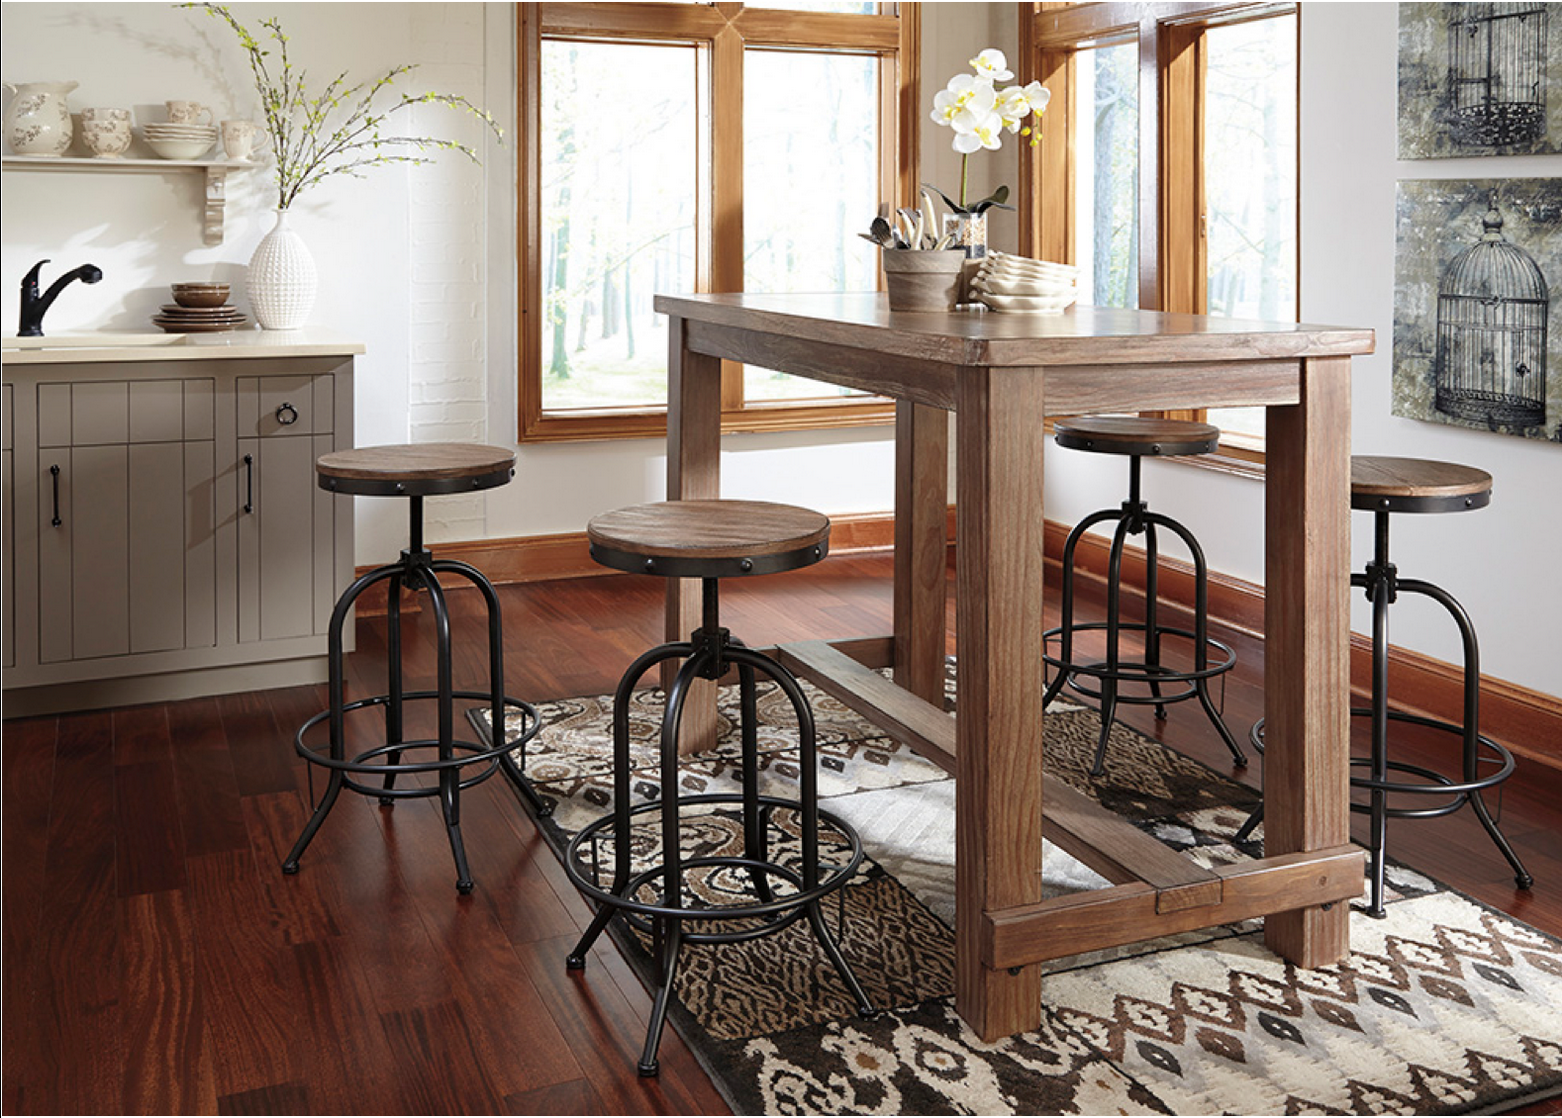 Good The True Rustic Beauty That Embodies The Vintage Casual Design Has Never  Come To Life More Than With The Look Of The Pinnadel Bar Table Set W/  Swivel Stools ...